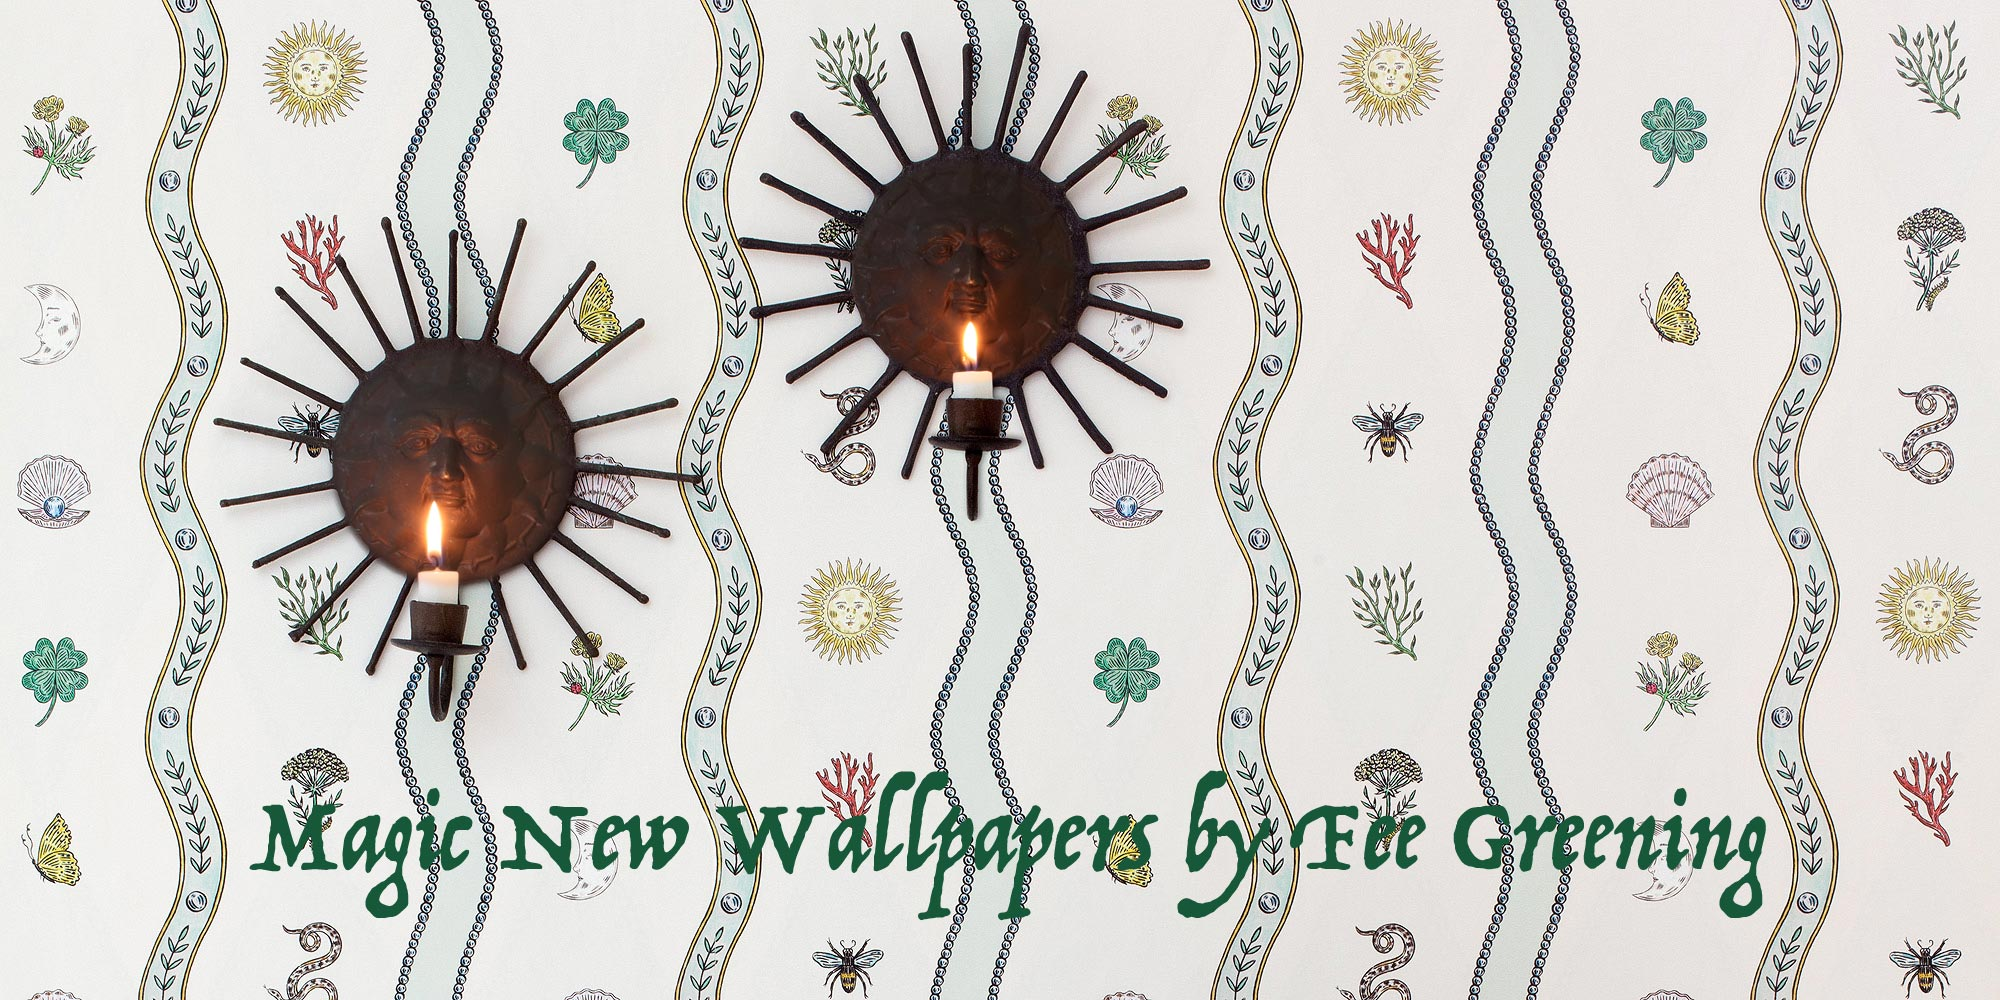 Magic new wallpapers by Fee Greening